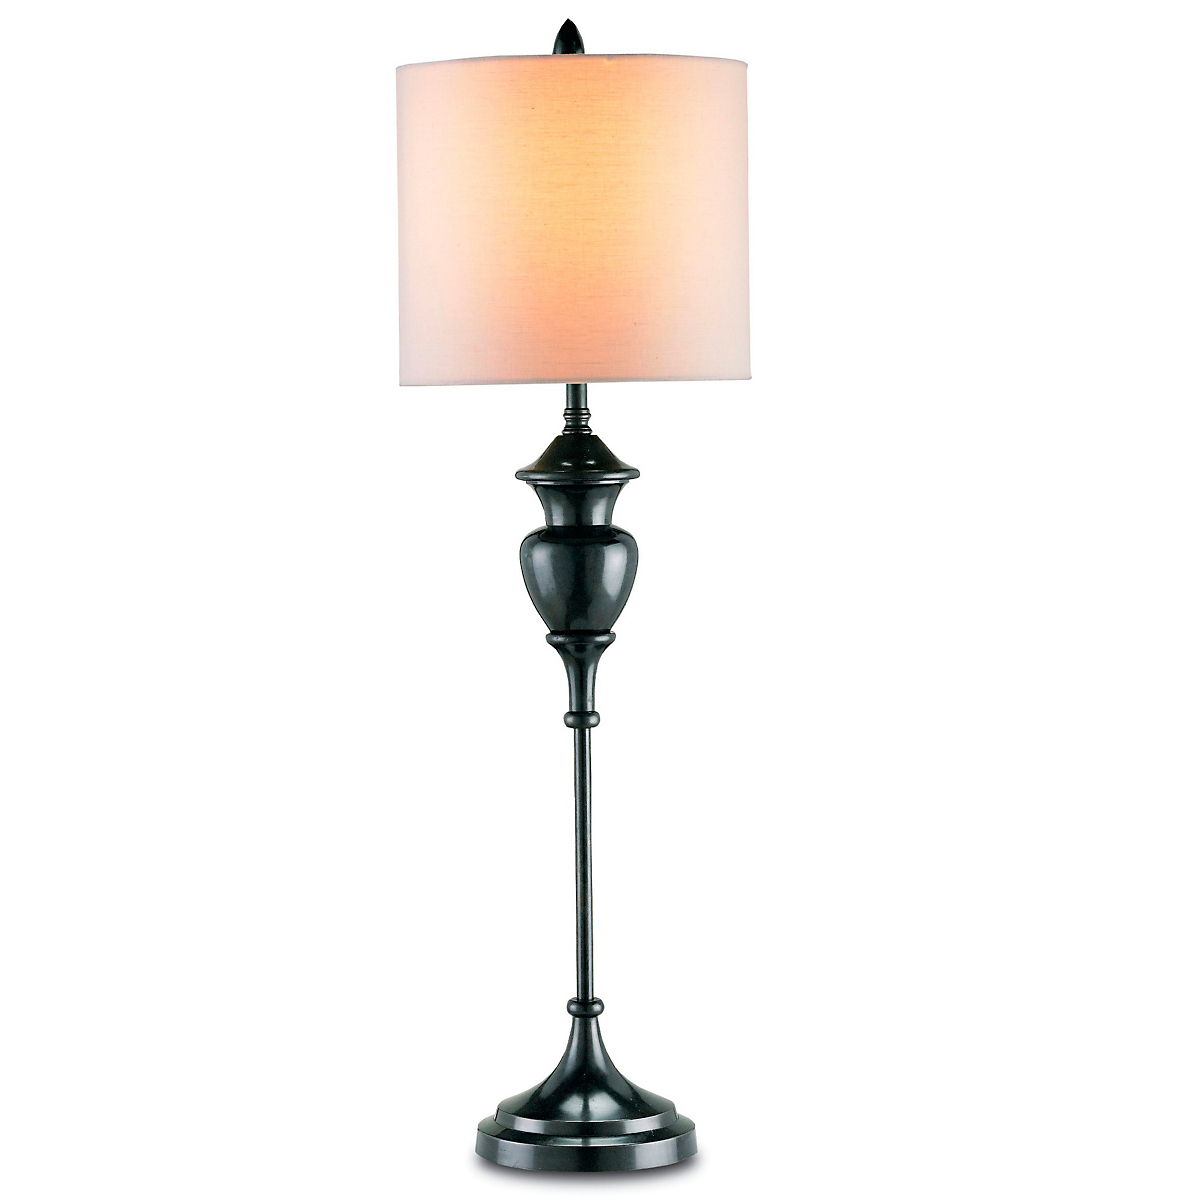 Currey & Company Markham Table Lamp, Black Bronze